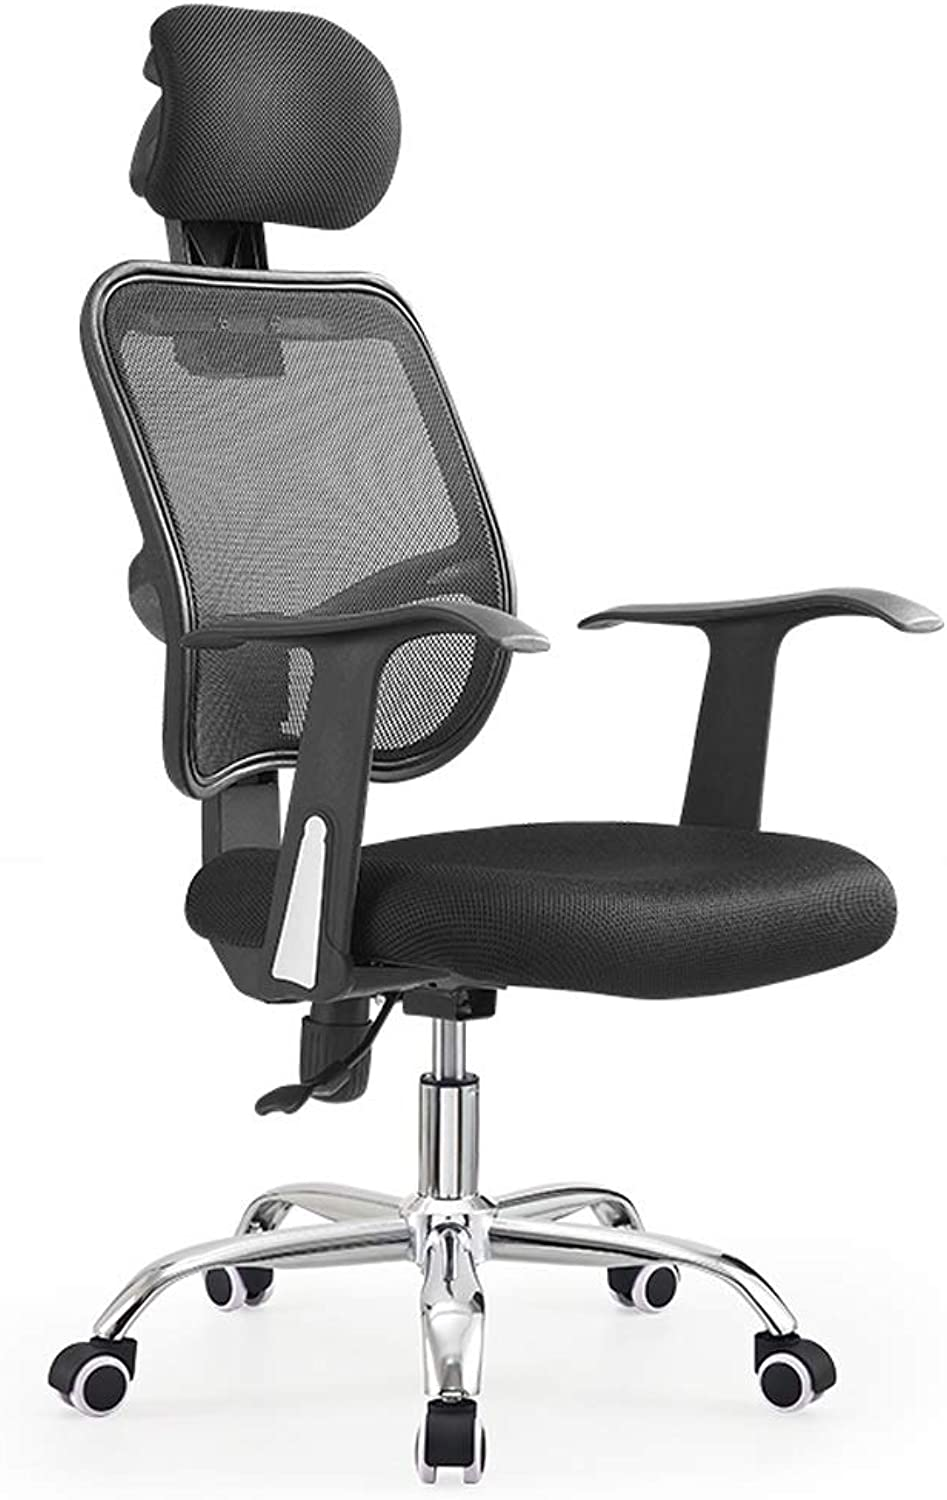 Office Chair High Back,Ergonomic Mesh Desk Chair with Headrest Support,Swivel Task Chair,Steel Casters,for Home Office (color   Black)